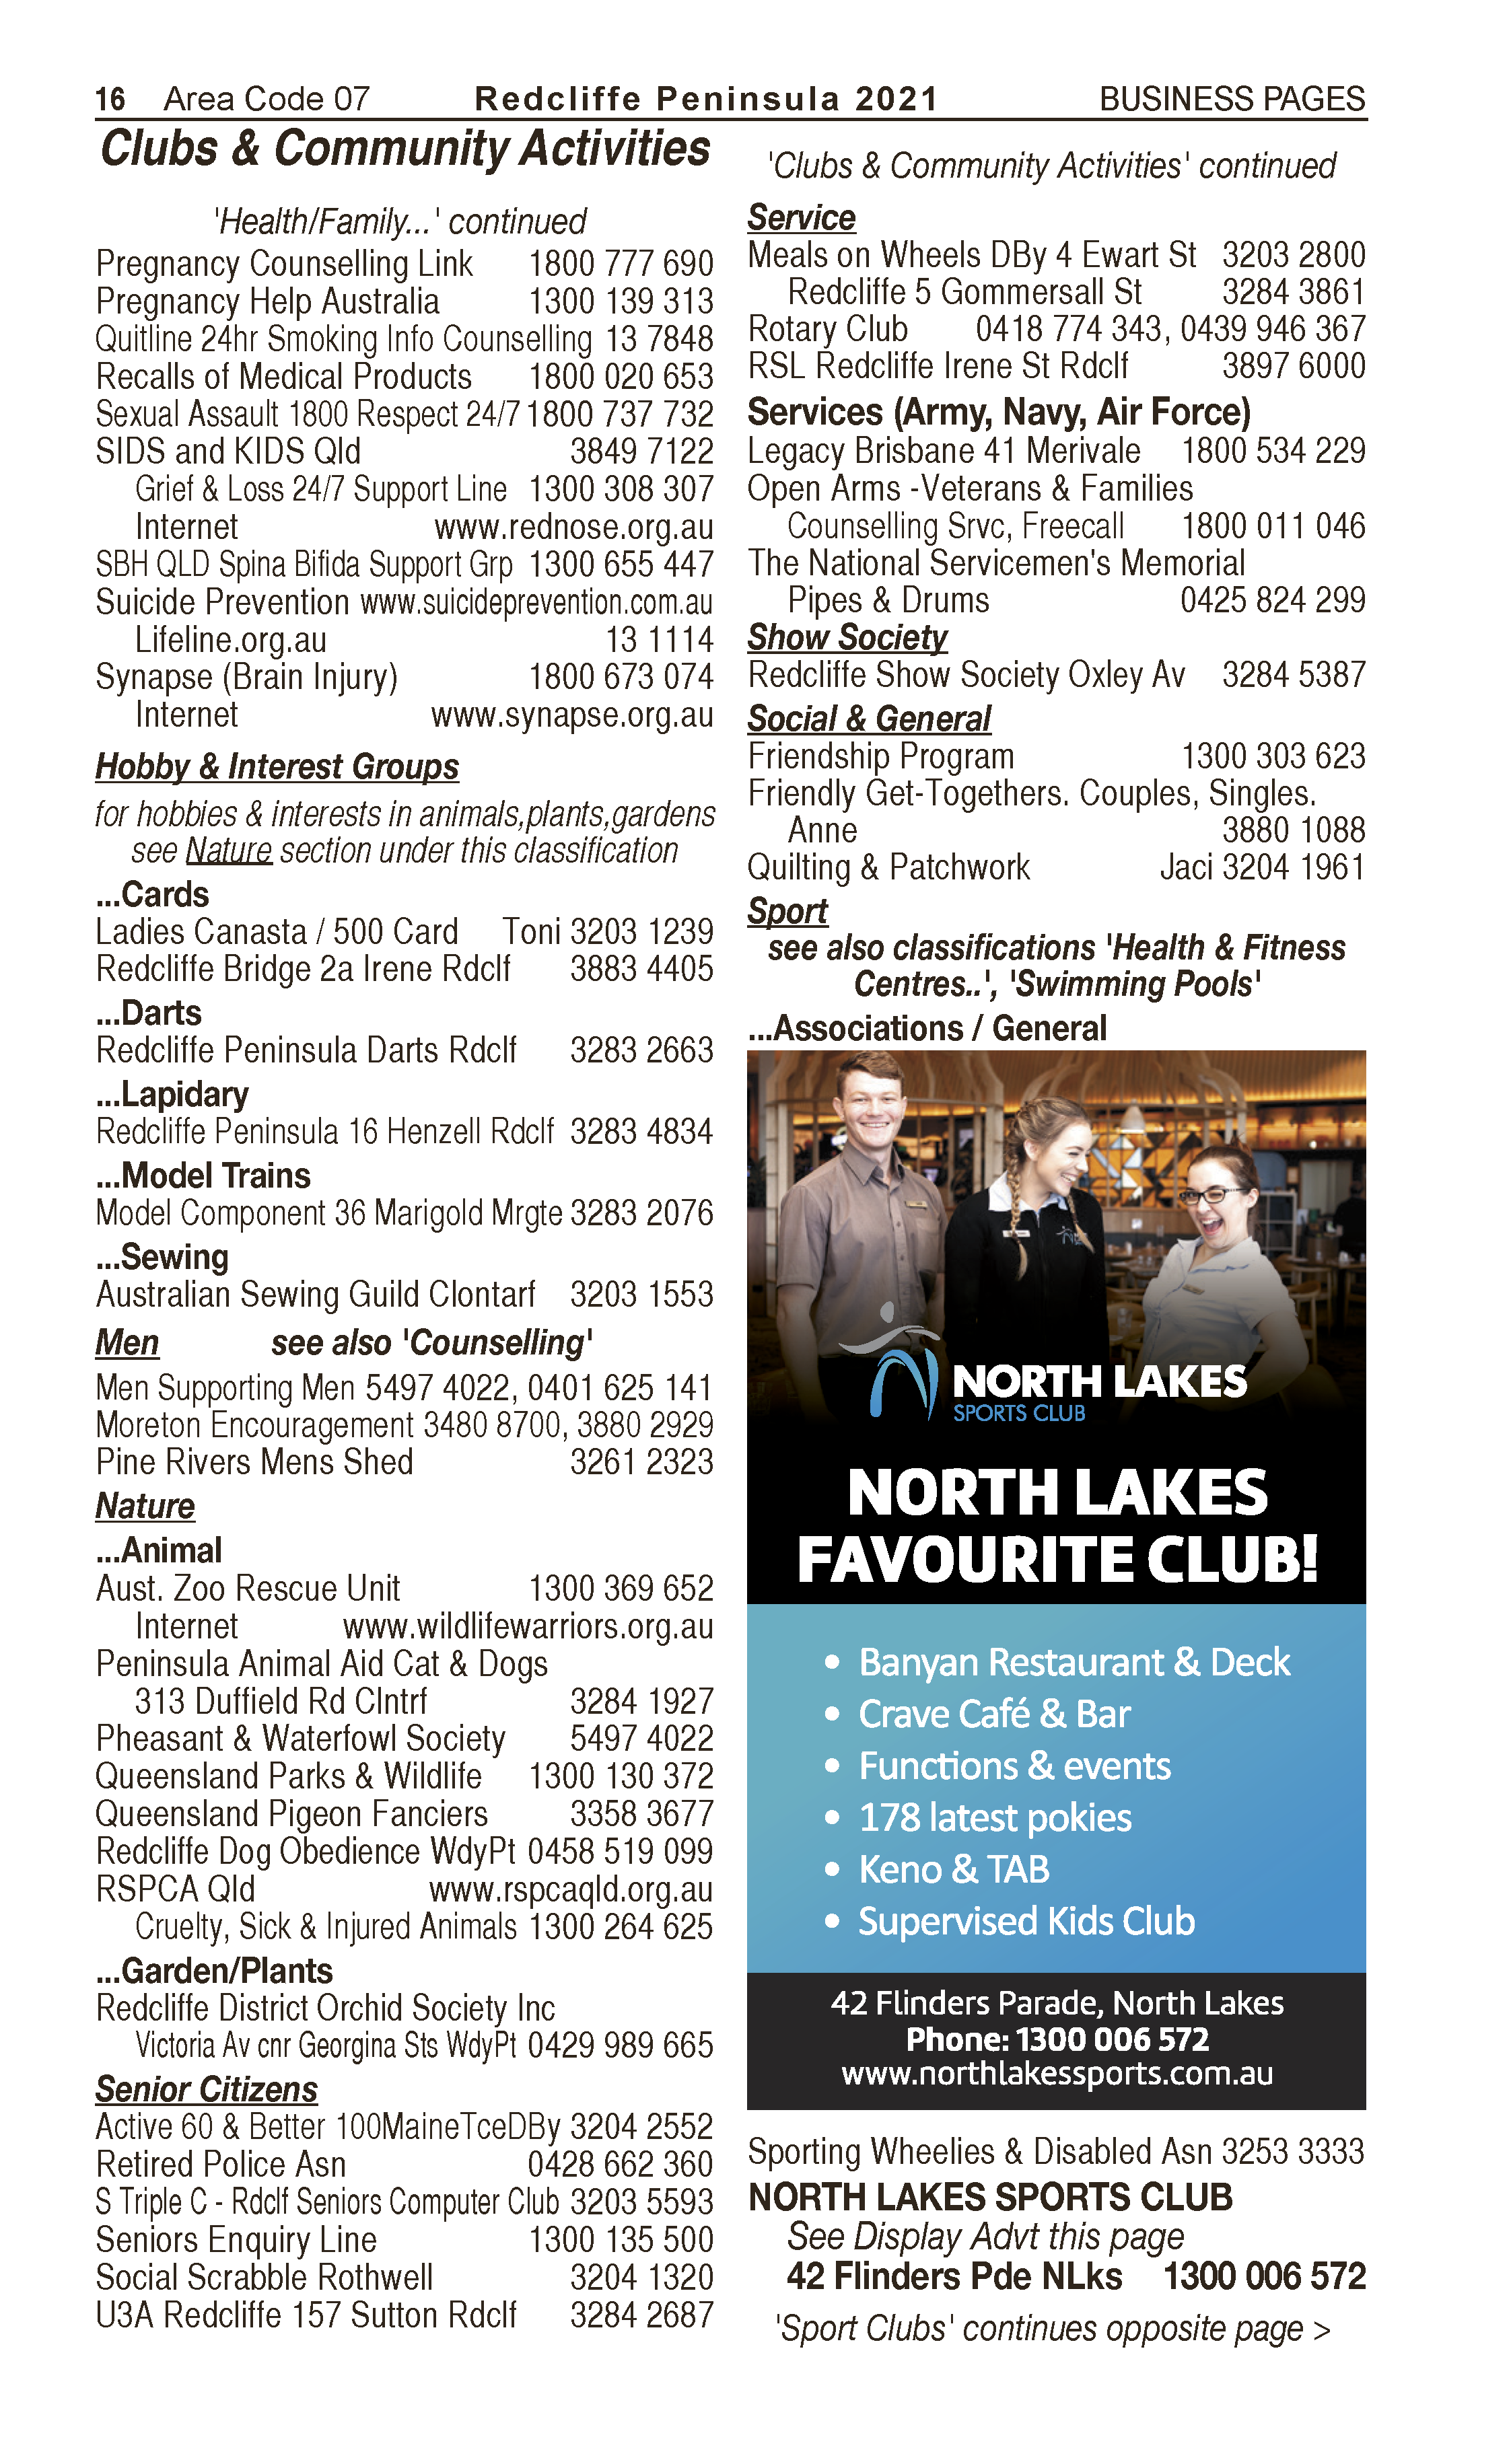 North Lakes Sports Club | Sports Associations & Sports General in North Lakes | PBezy Pocket Books local directories - page 16